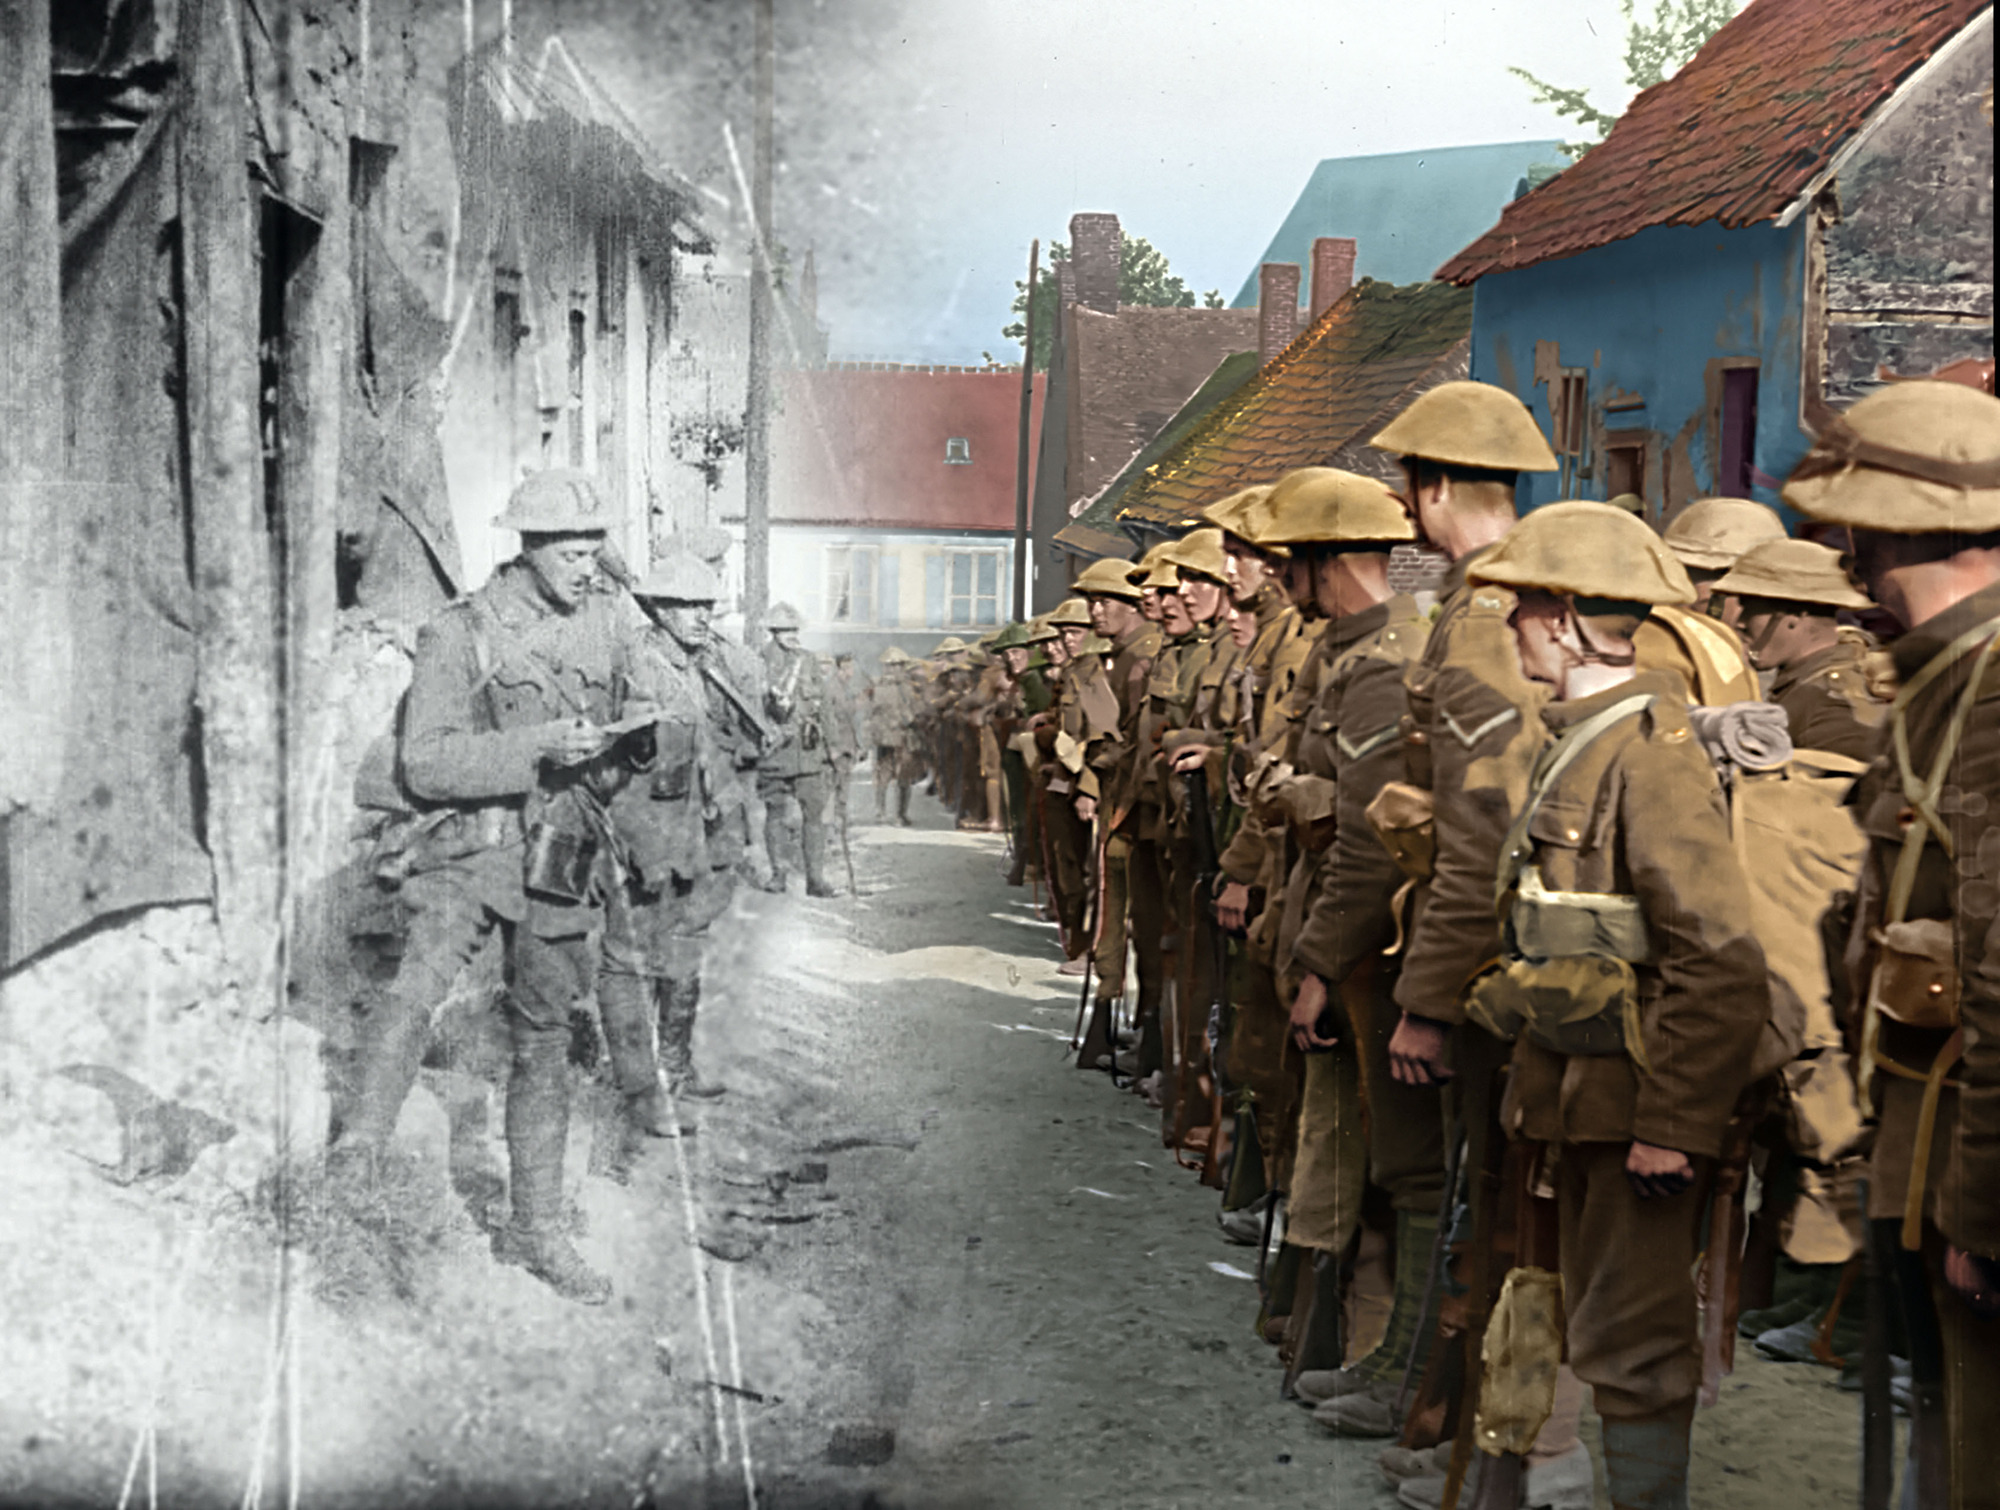 Peter Jackson Making World War I Film for BBC